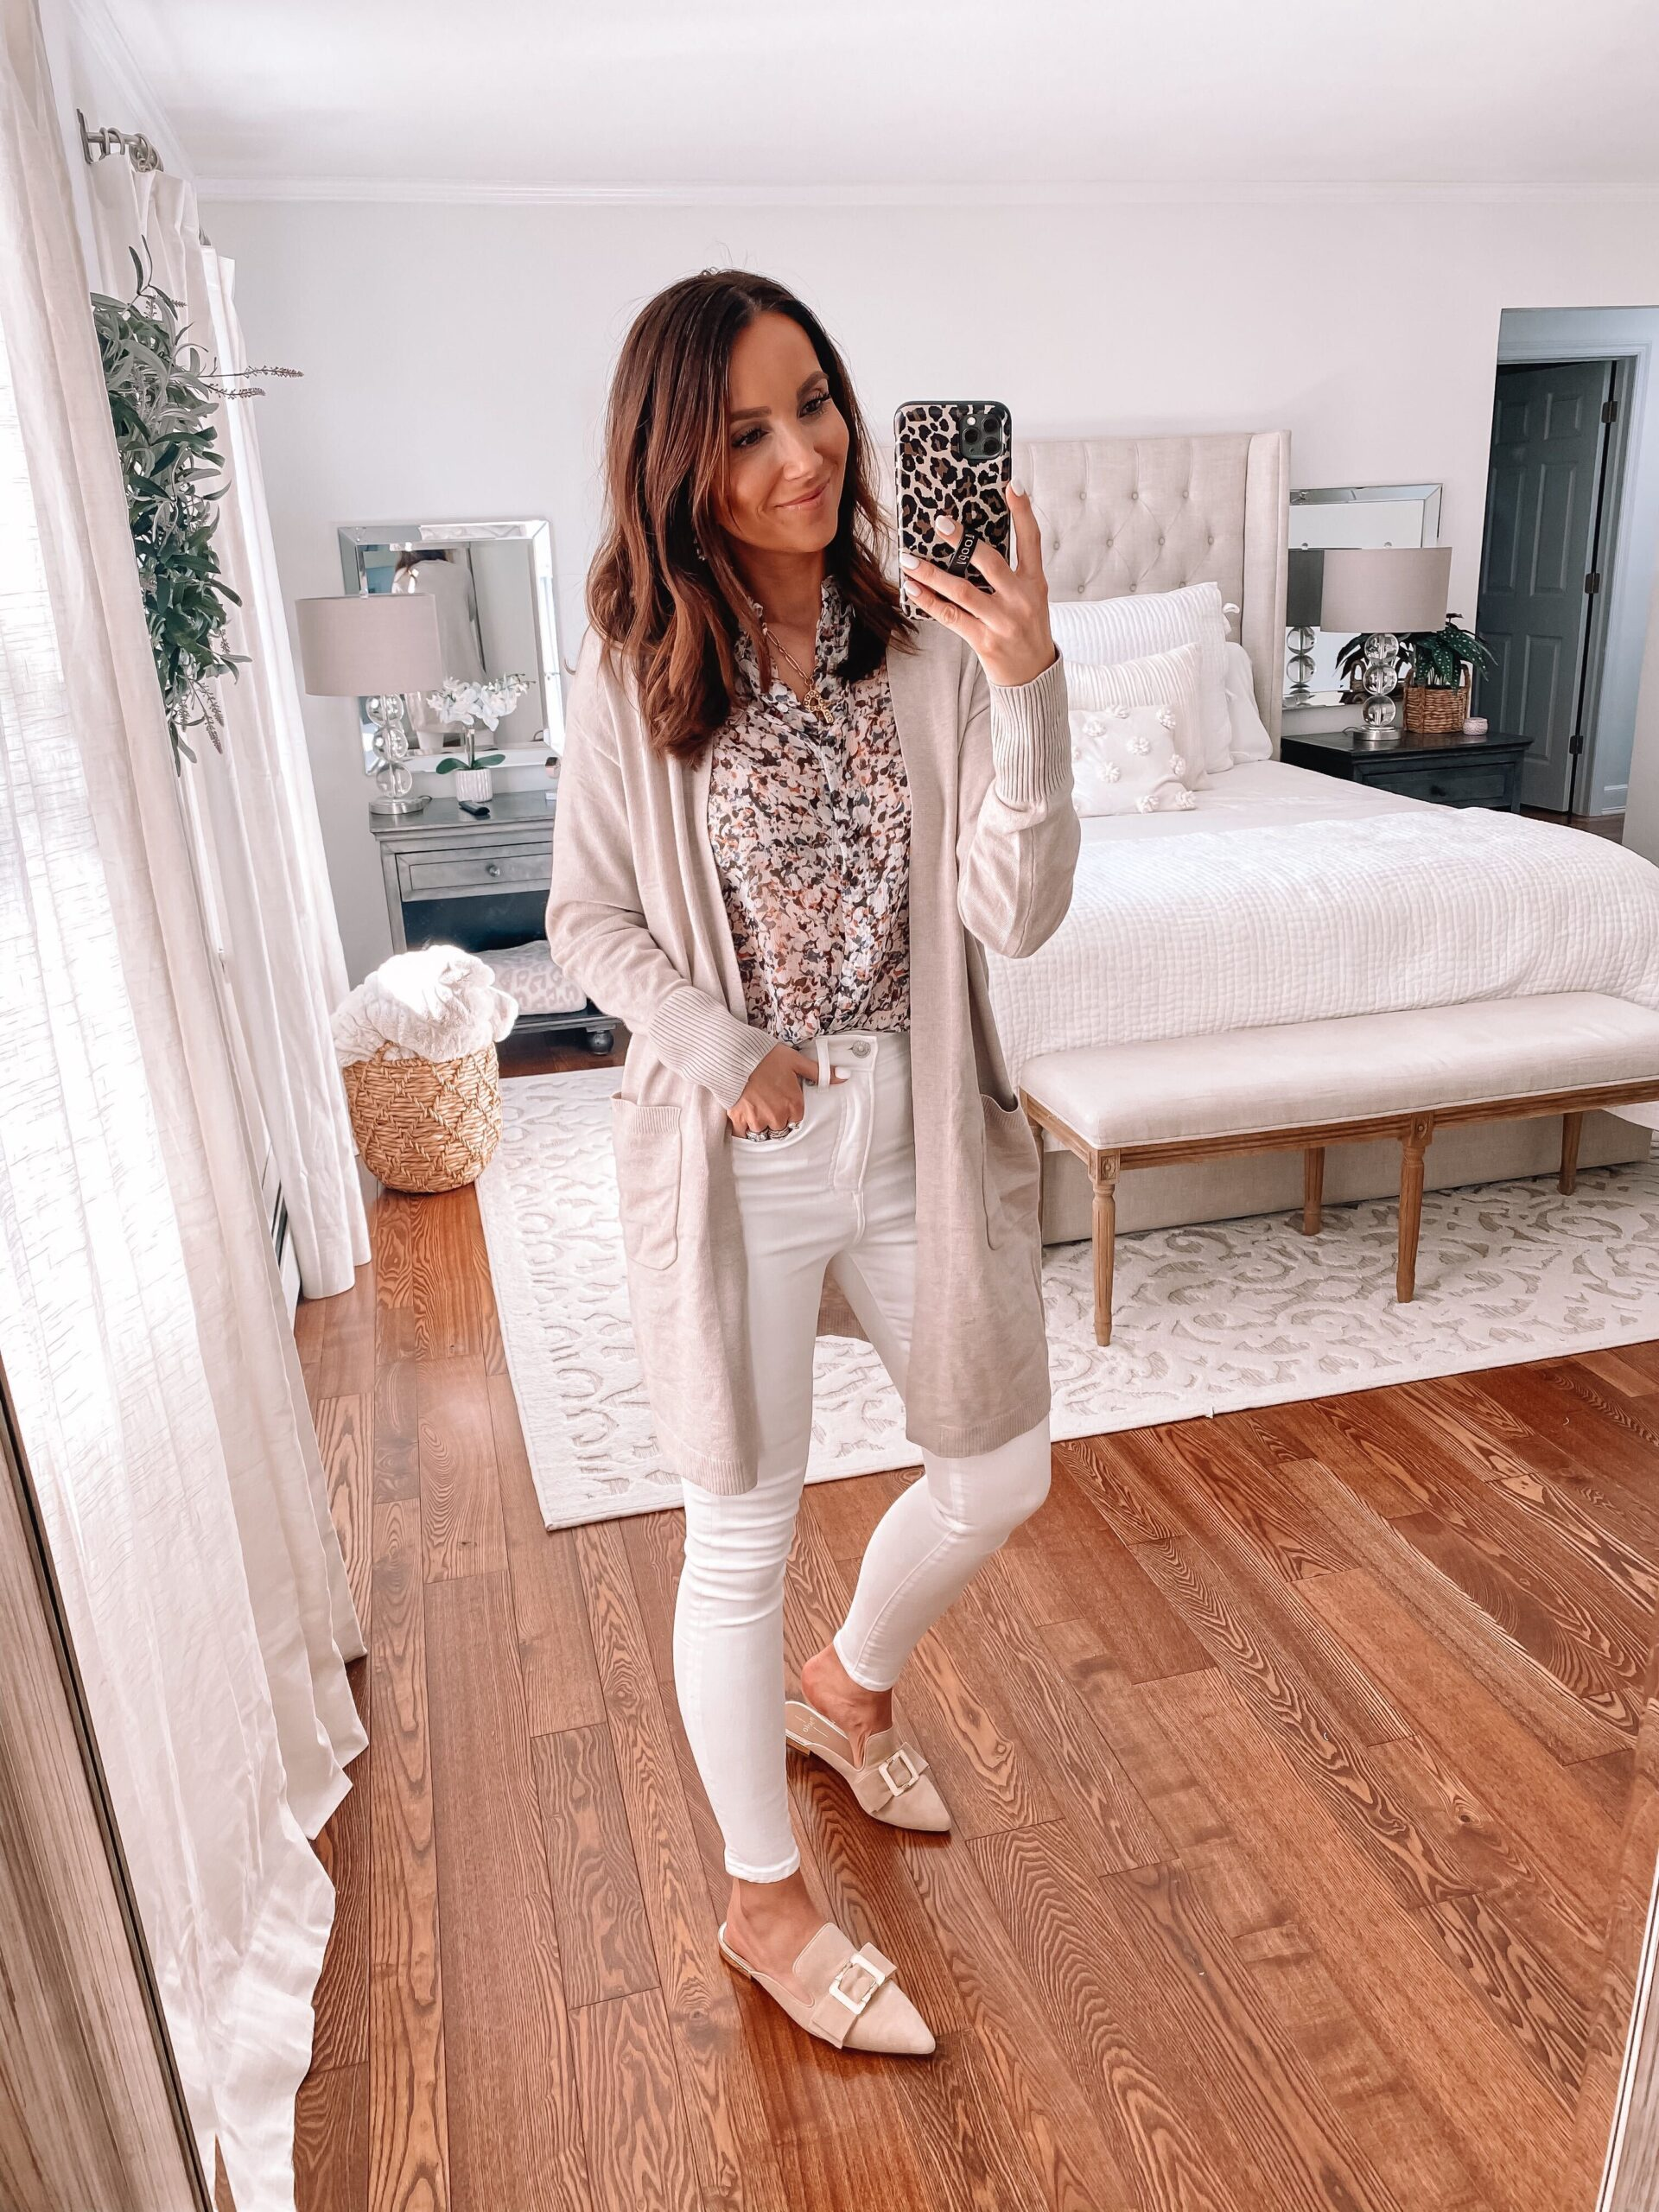 express cardigan and floral blouse